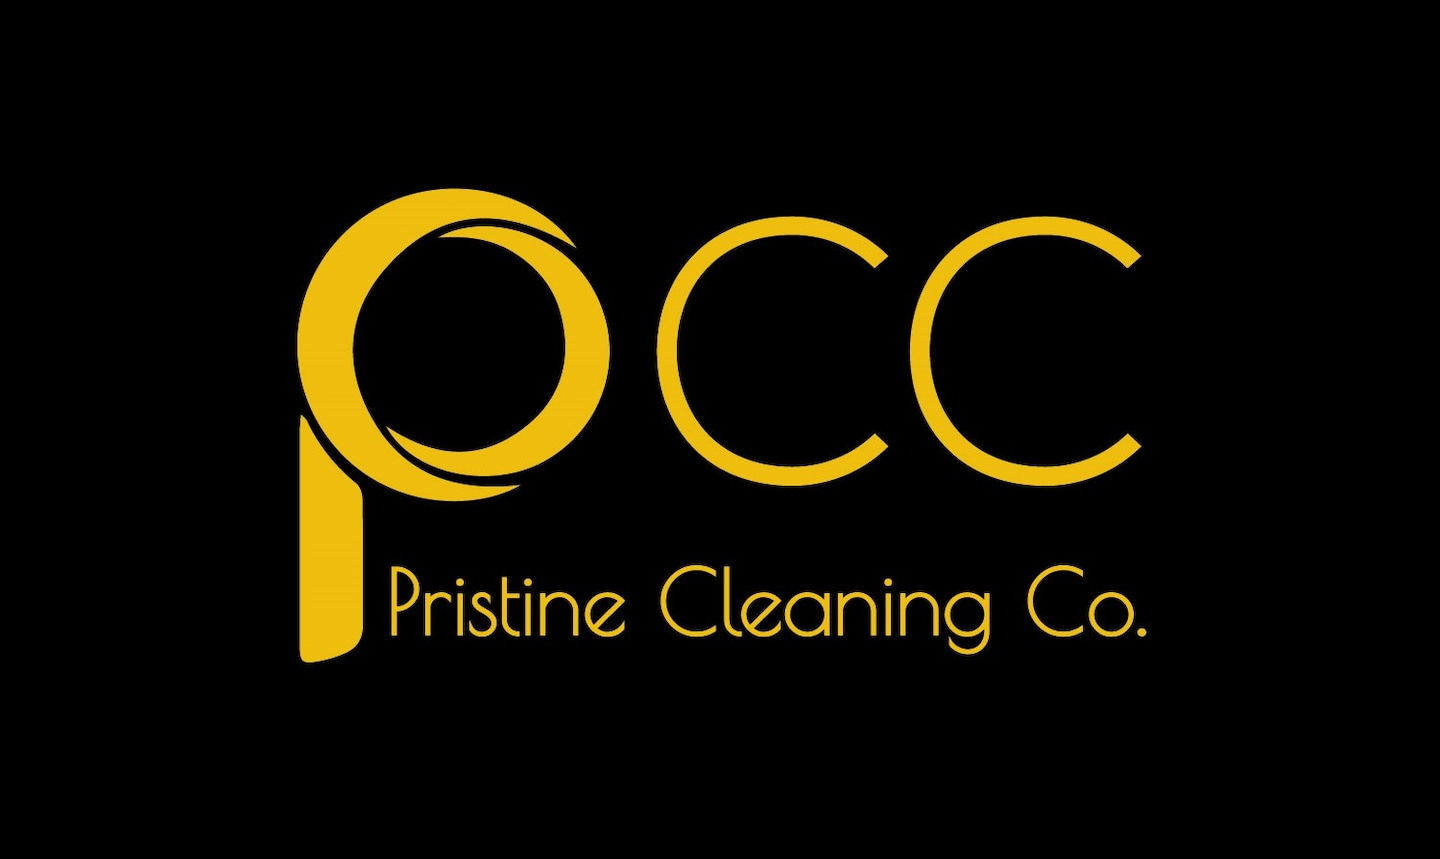 Pristine Cleaning Co.